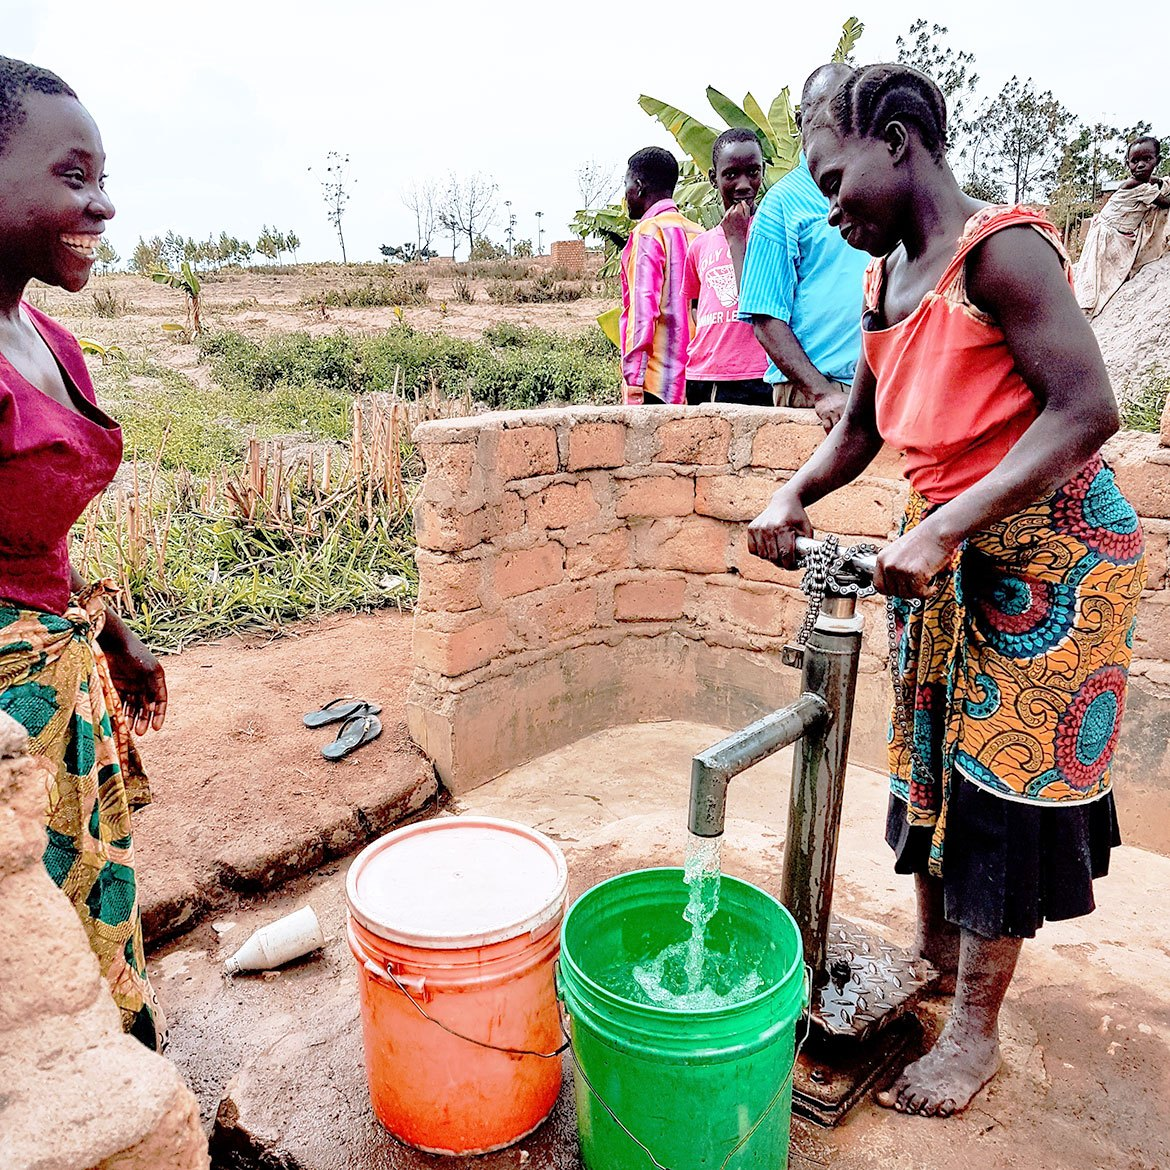 c04-getting-water-from-a-well